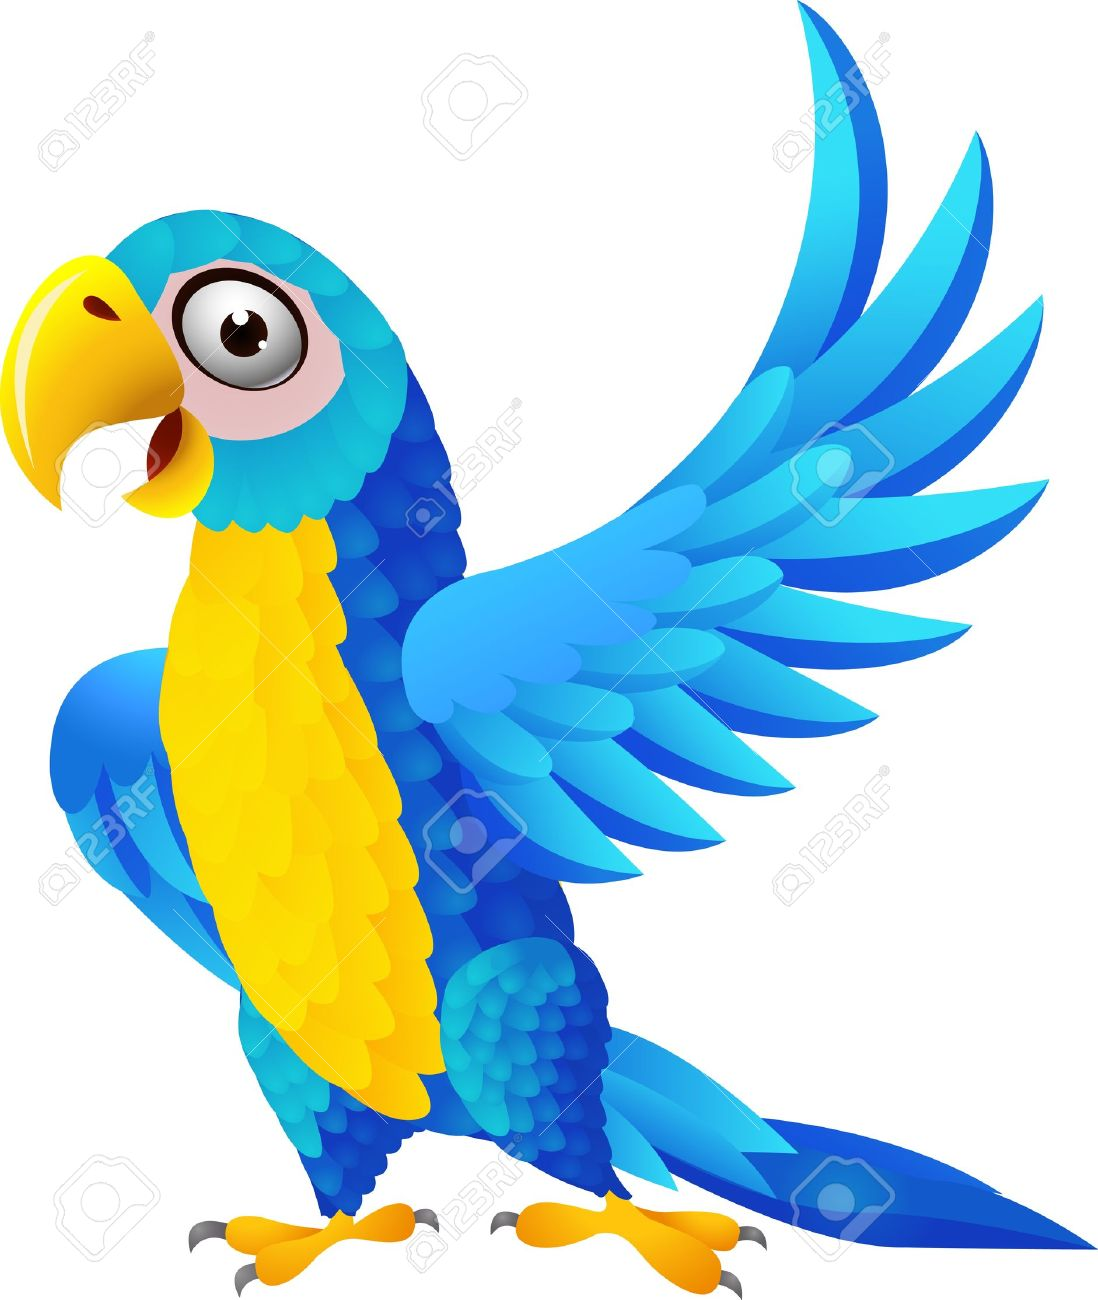 Illustration Of Macaw Birg Royalty Free Cliparts, Vectors, And.